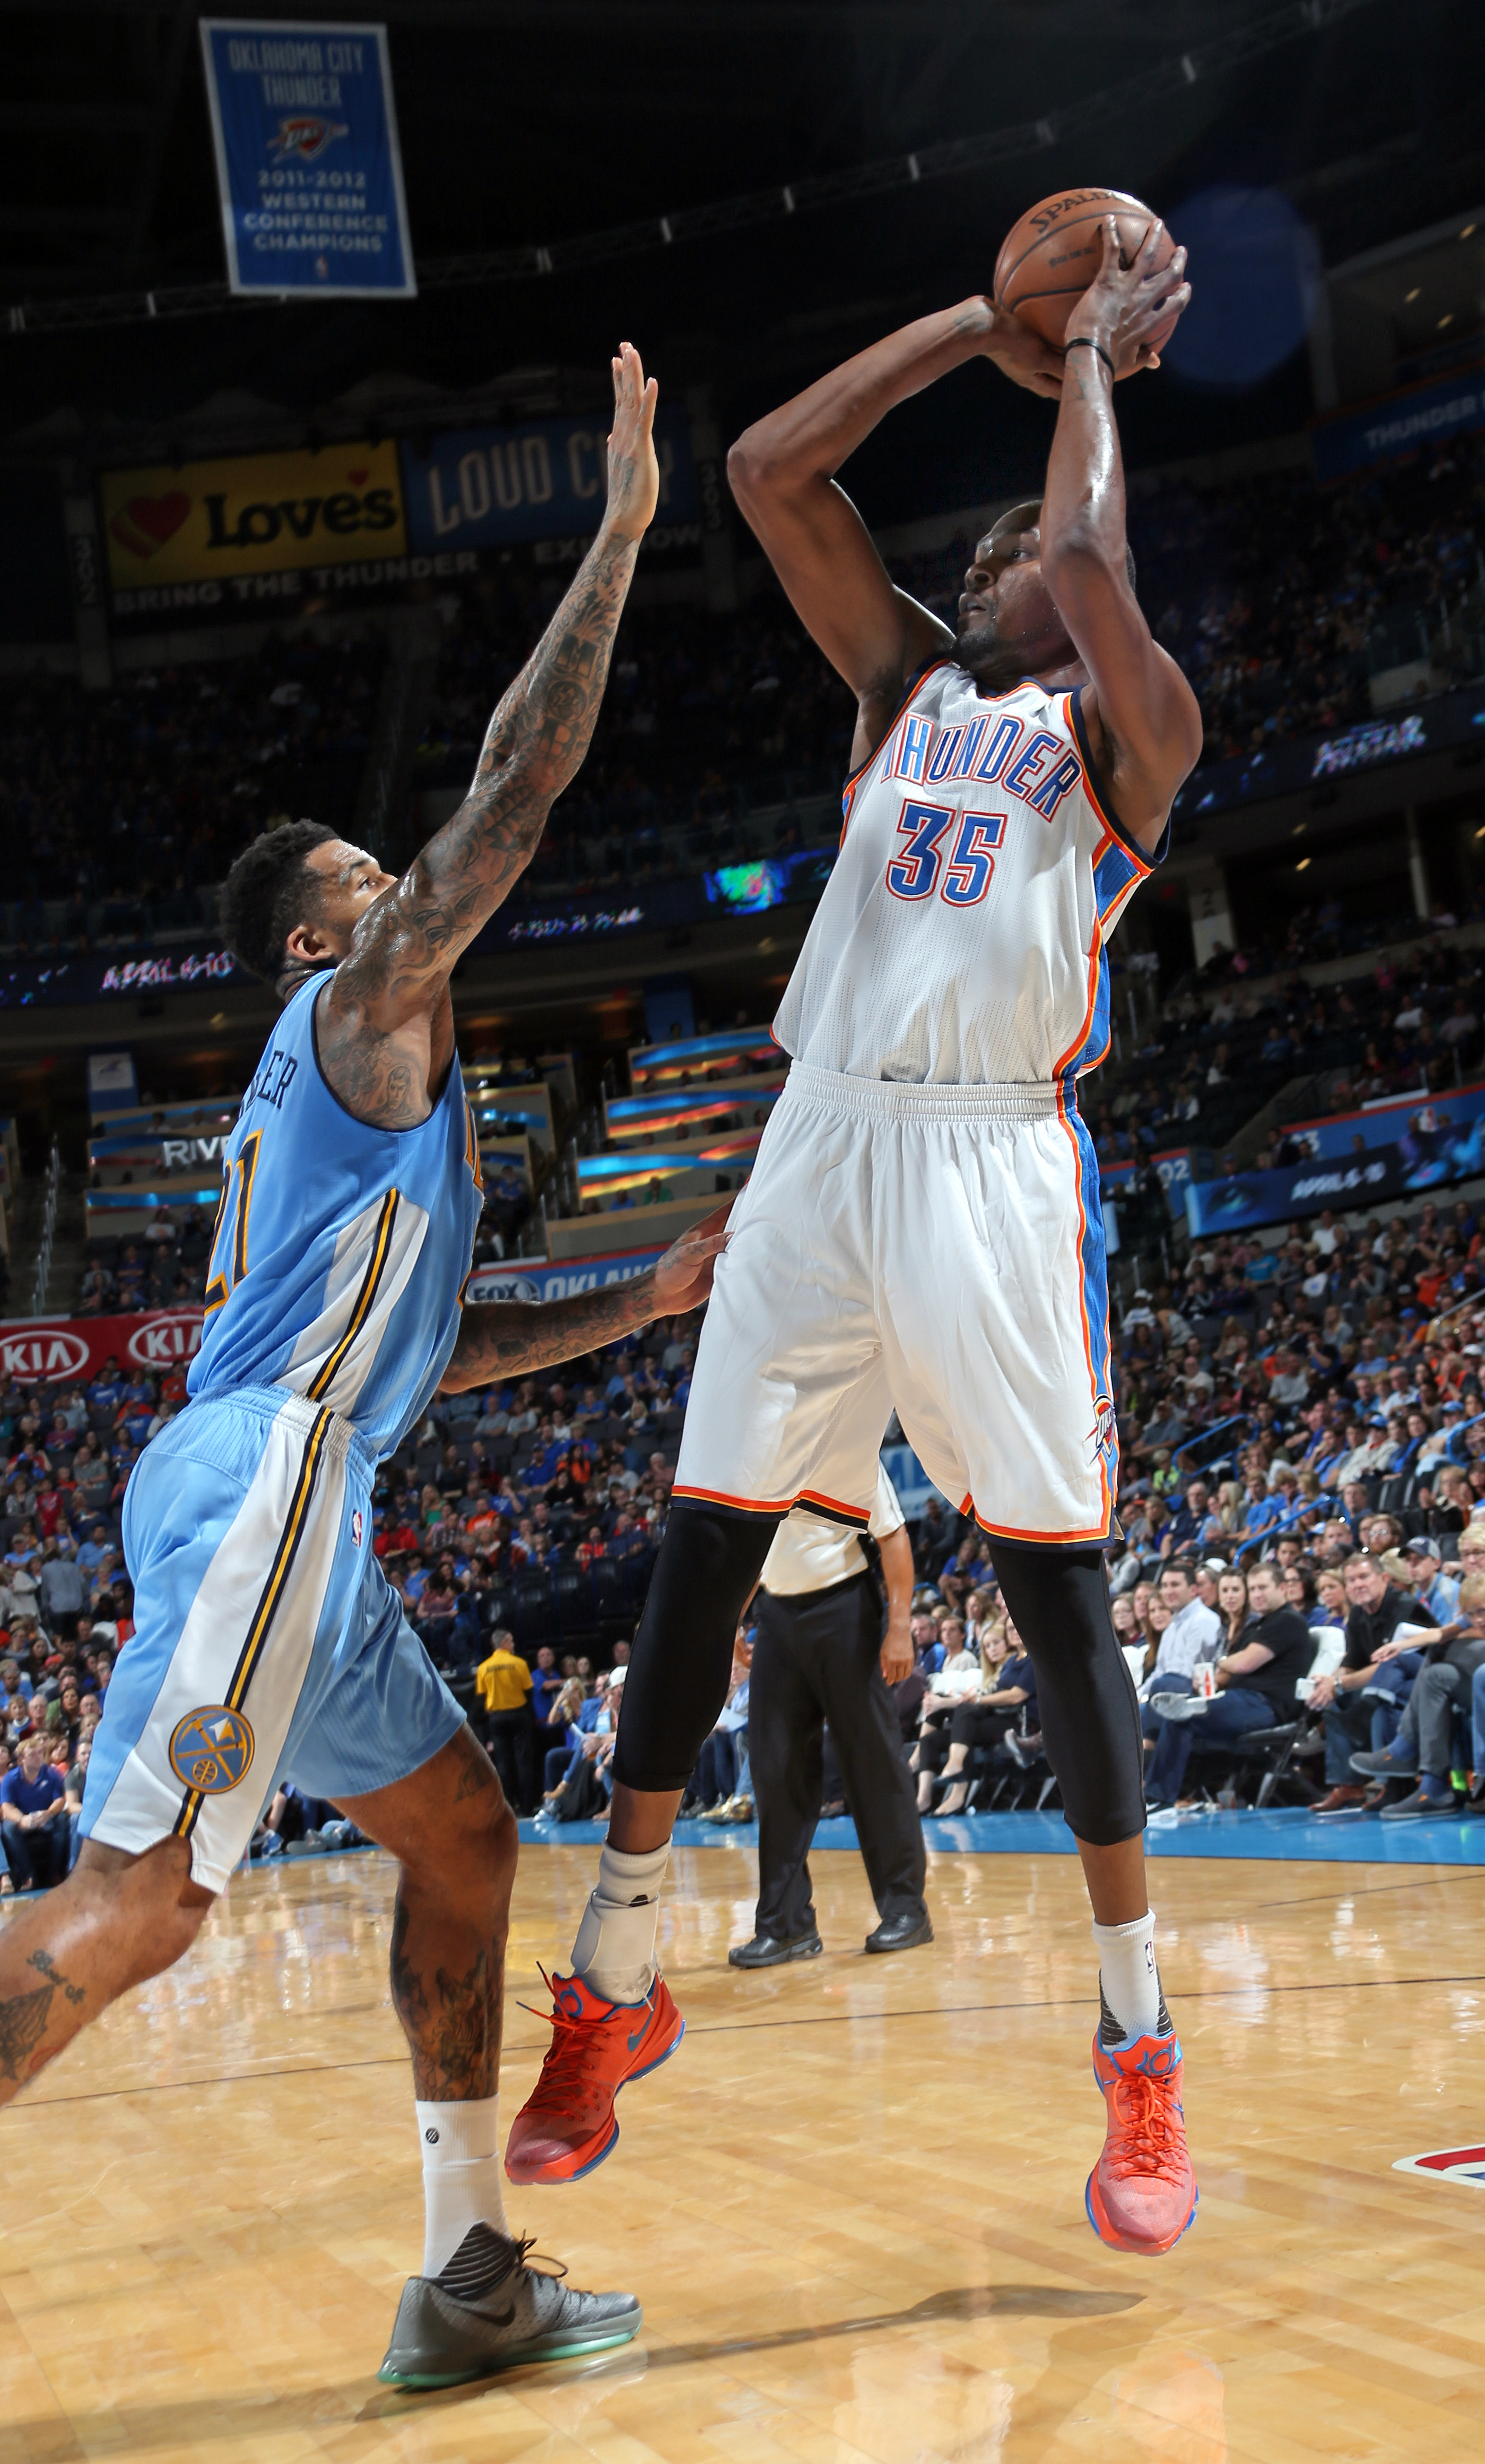 OKLAHOMA CITY, OK - OCTOBER 18:  Kevin Durant #35 of the Oklahoma City Thunder shoots against the Denver Nuggets during a preseason game on October 18, 2015 at Chesapeake Energy Arena in Oklahoma City, Oklahoma. (Photo by Layne Murdoch/NBAE via Getty Imag